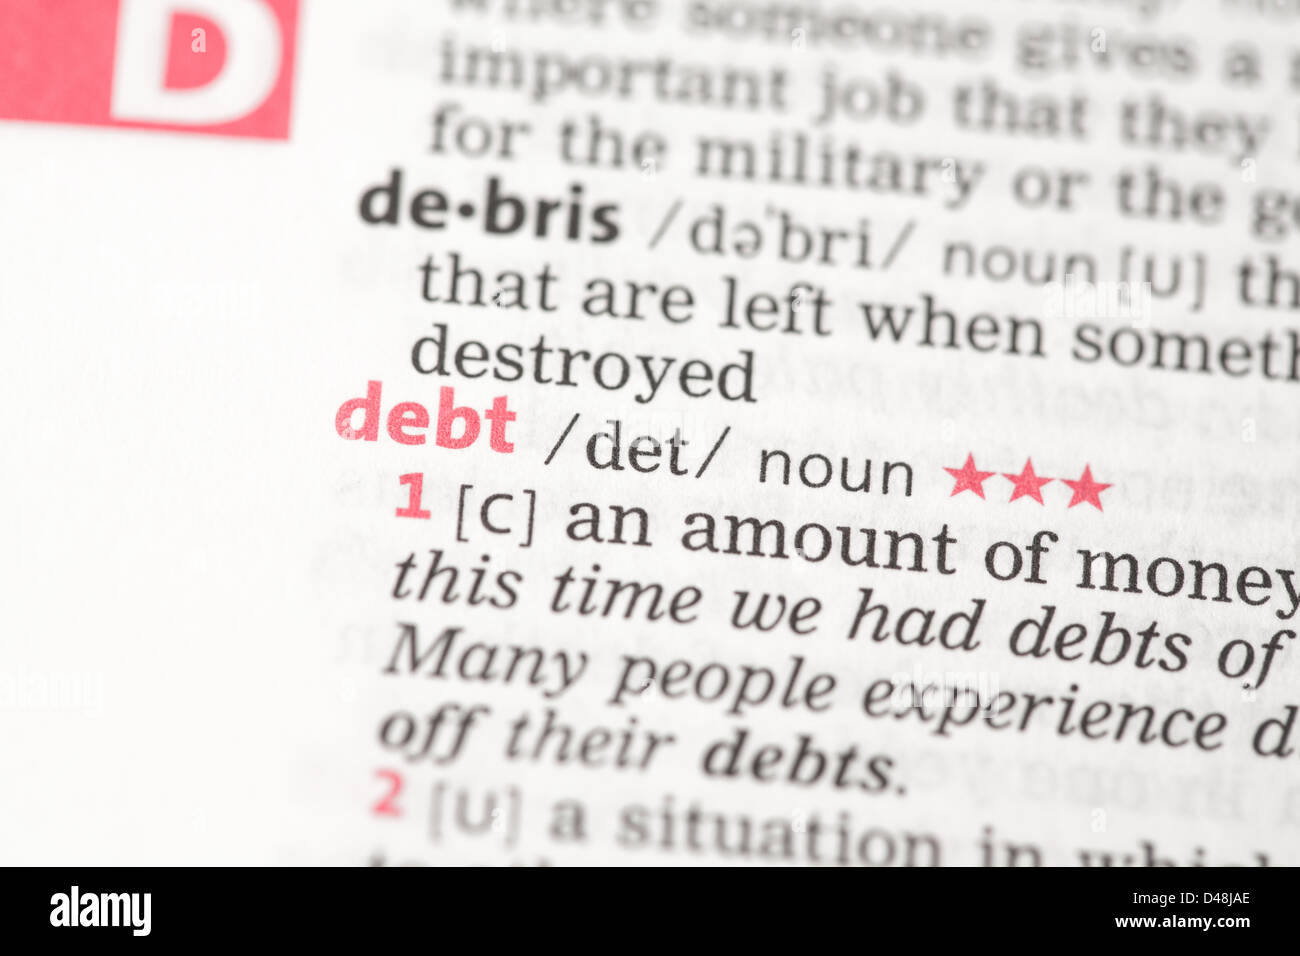 Debt definition - Stock Image